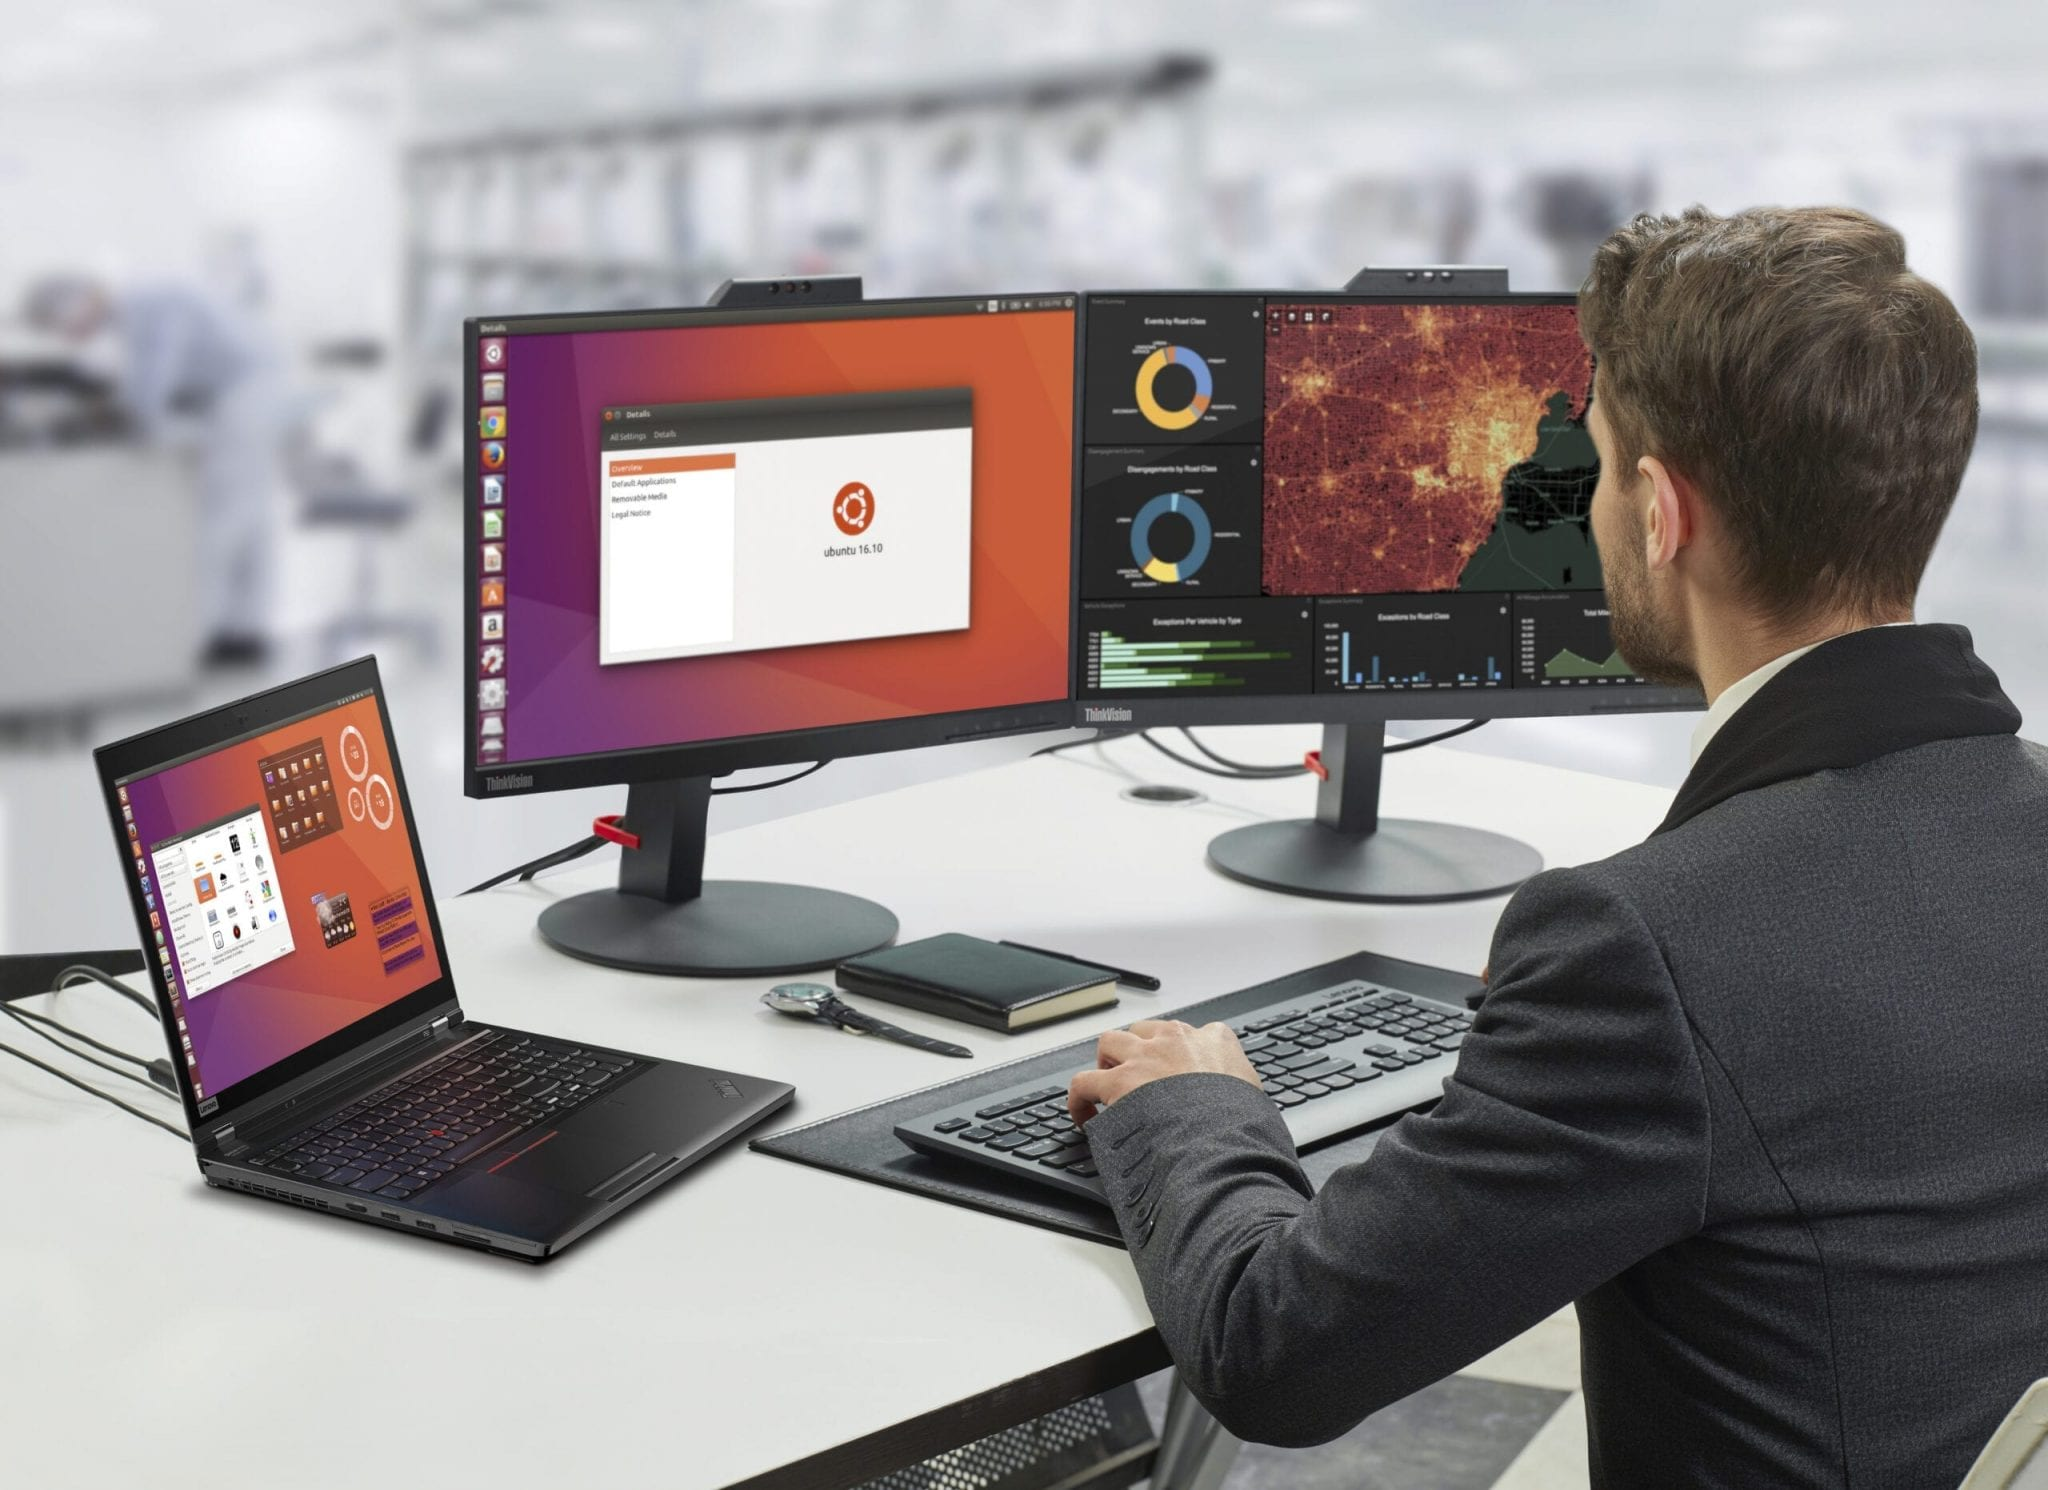 ThinkPad P52 with multiple monitors